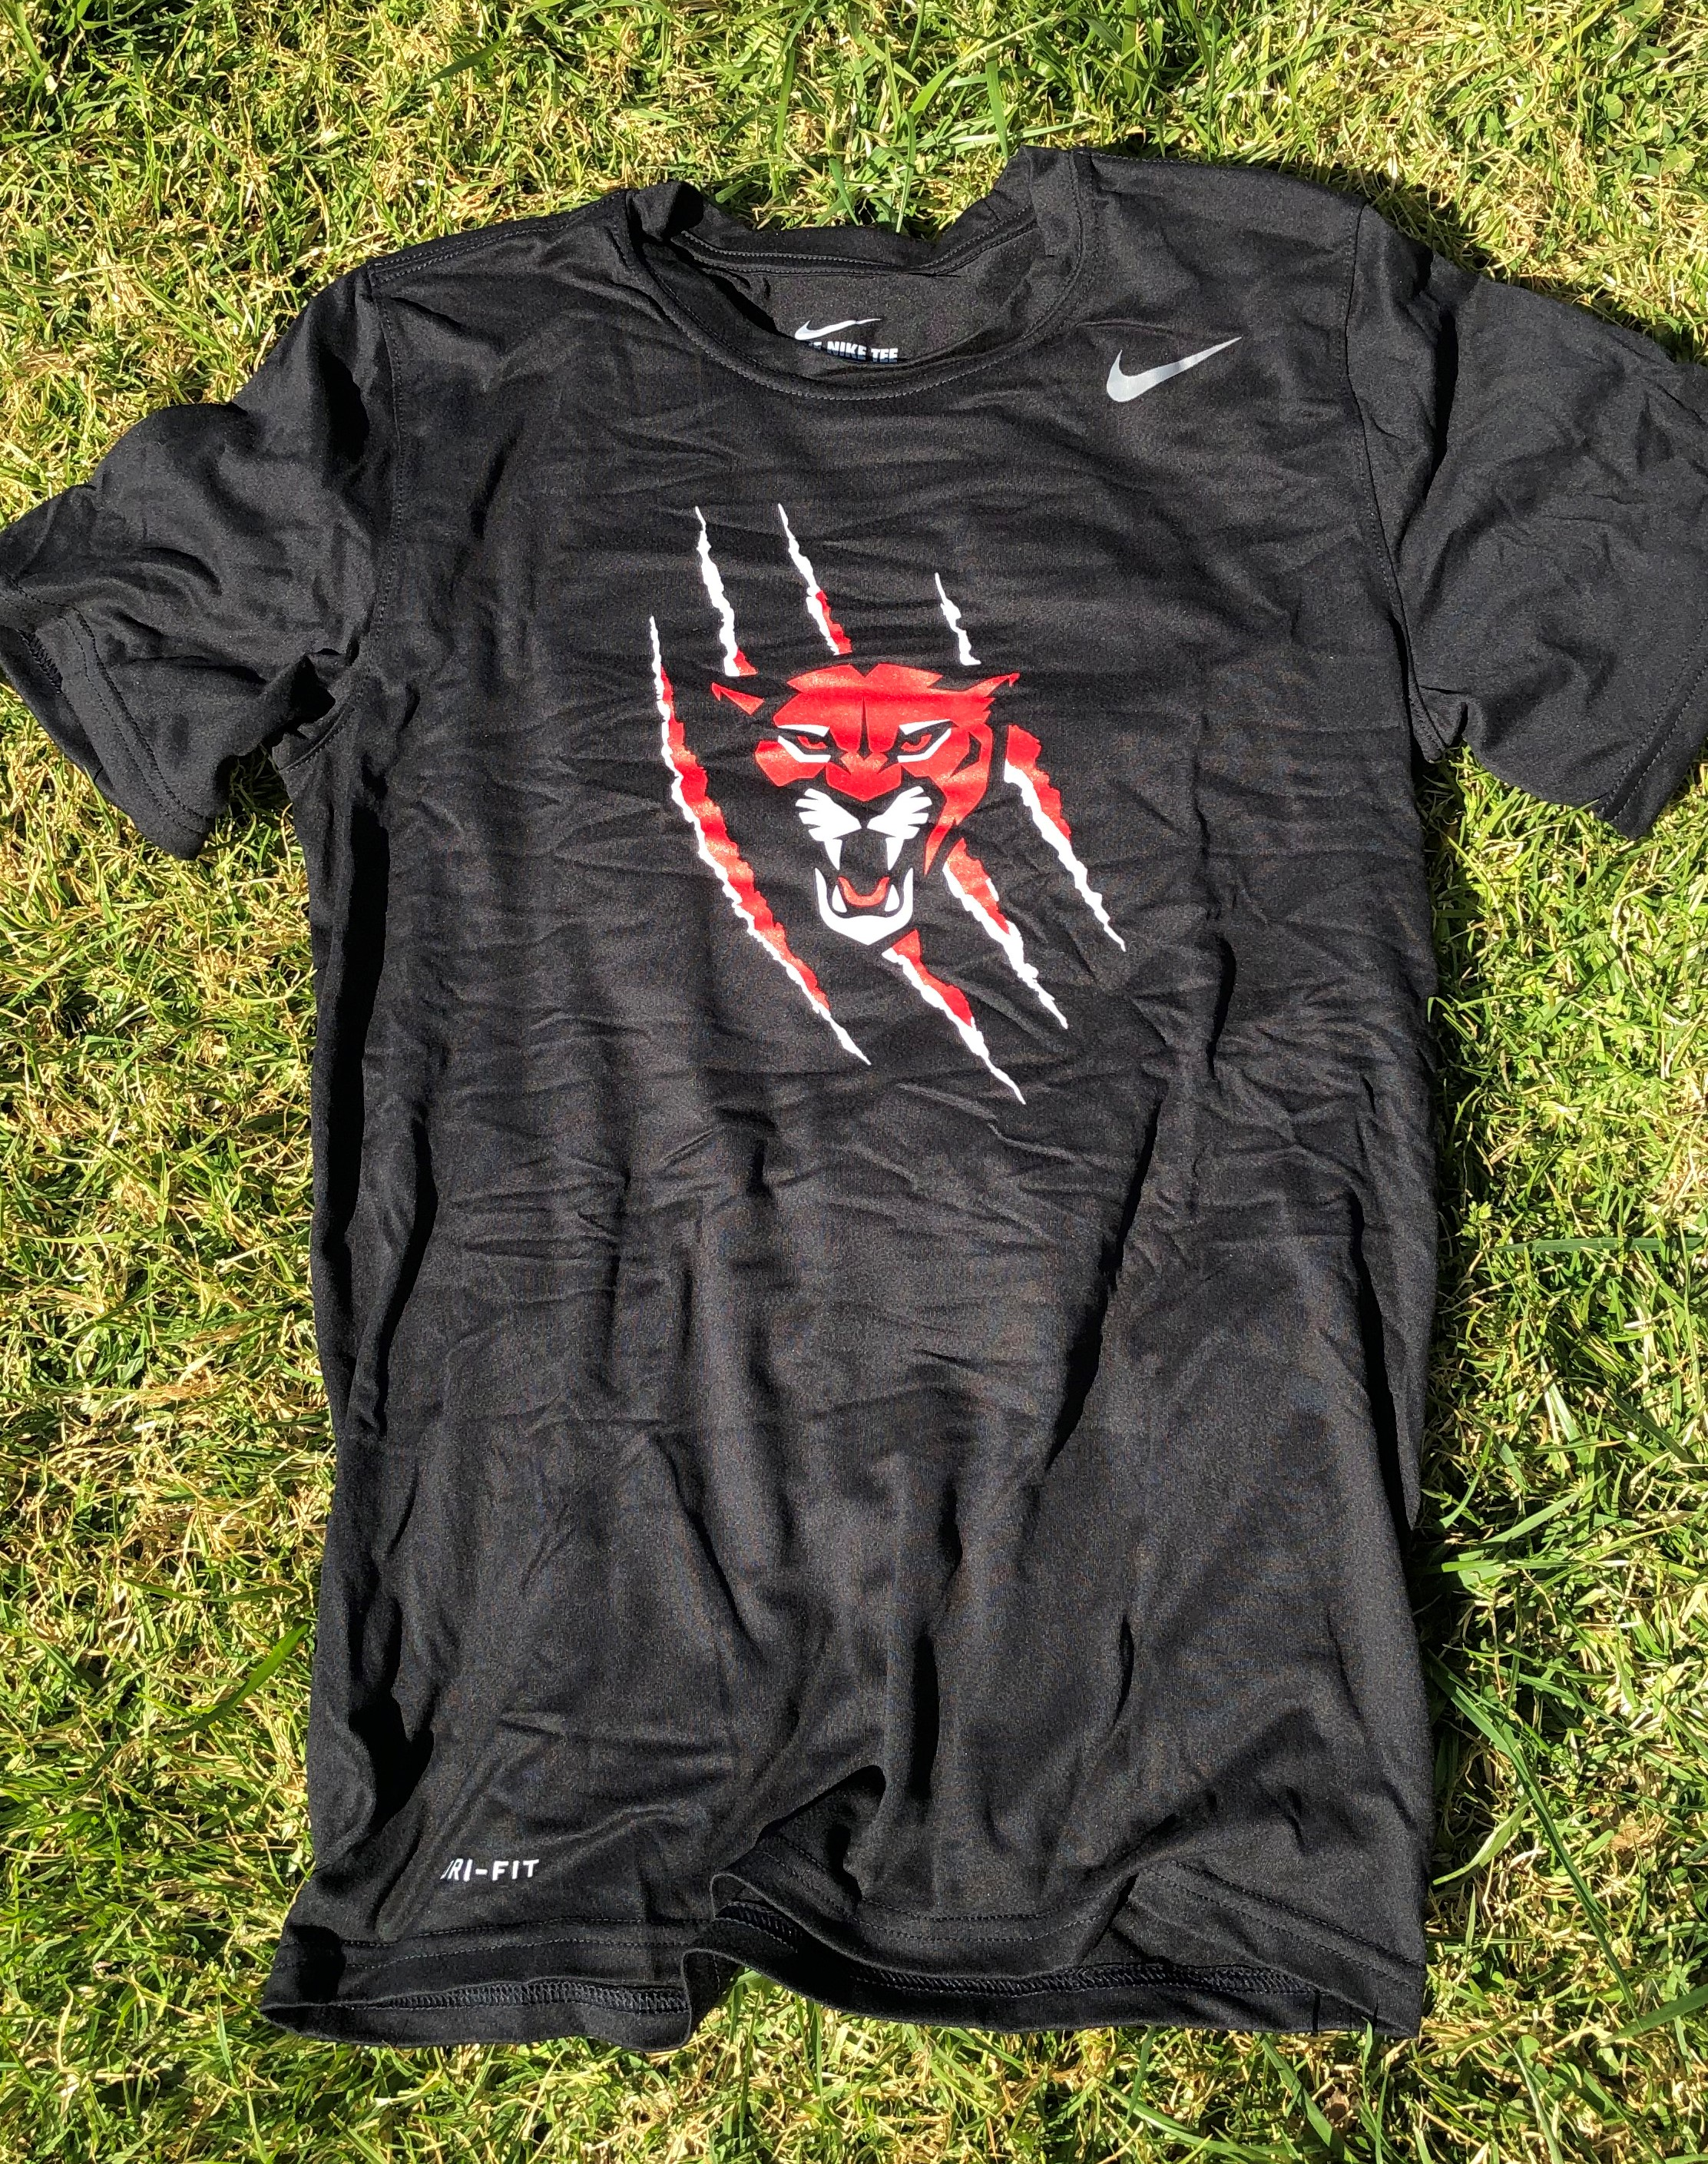 Black t-shirt with cougar image